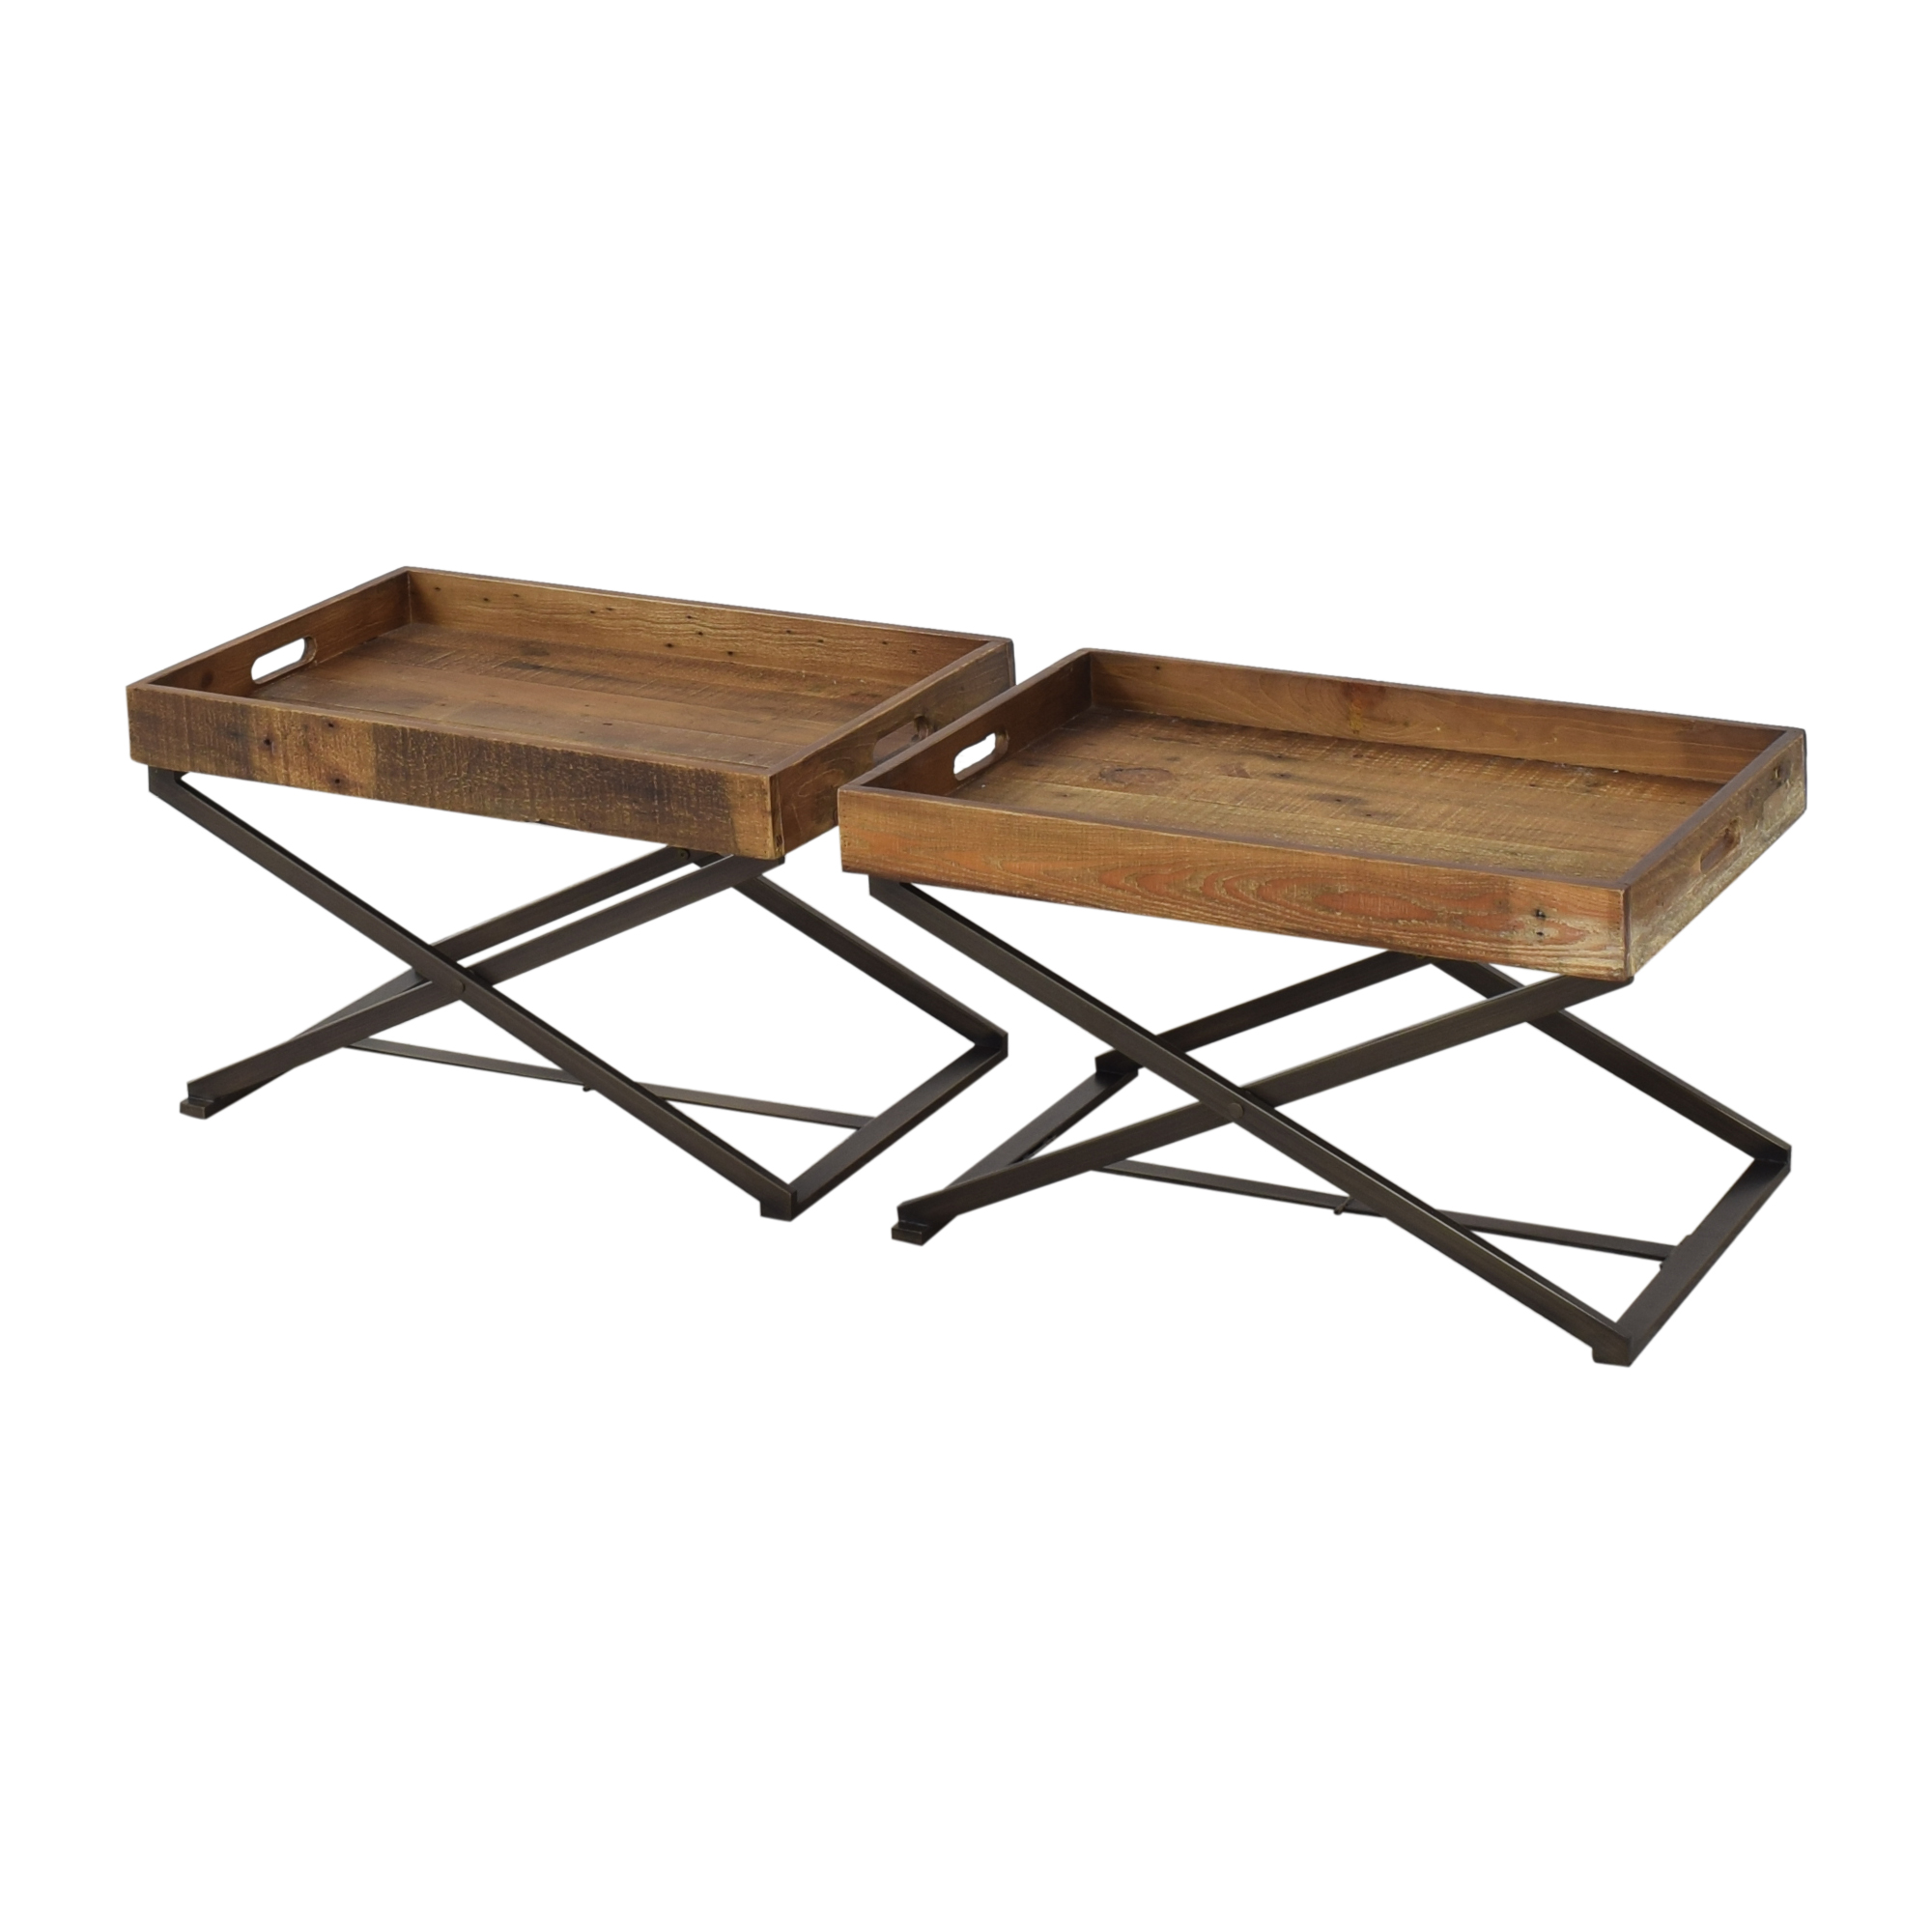 West Elm West Elm Butler Stand and Reclaimed Wood Trays nj